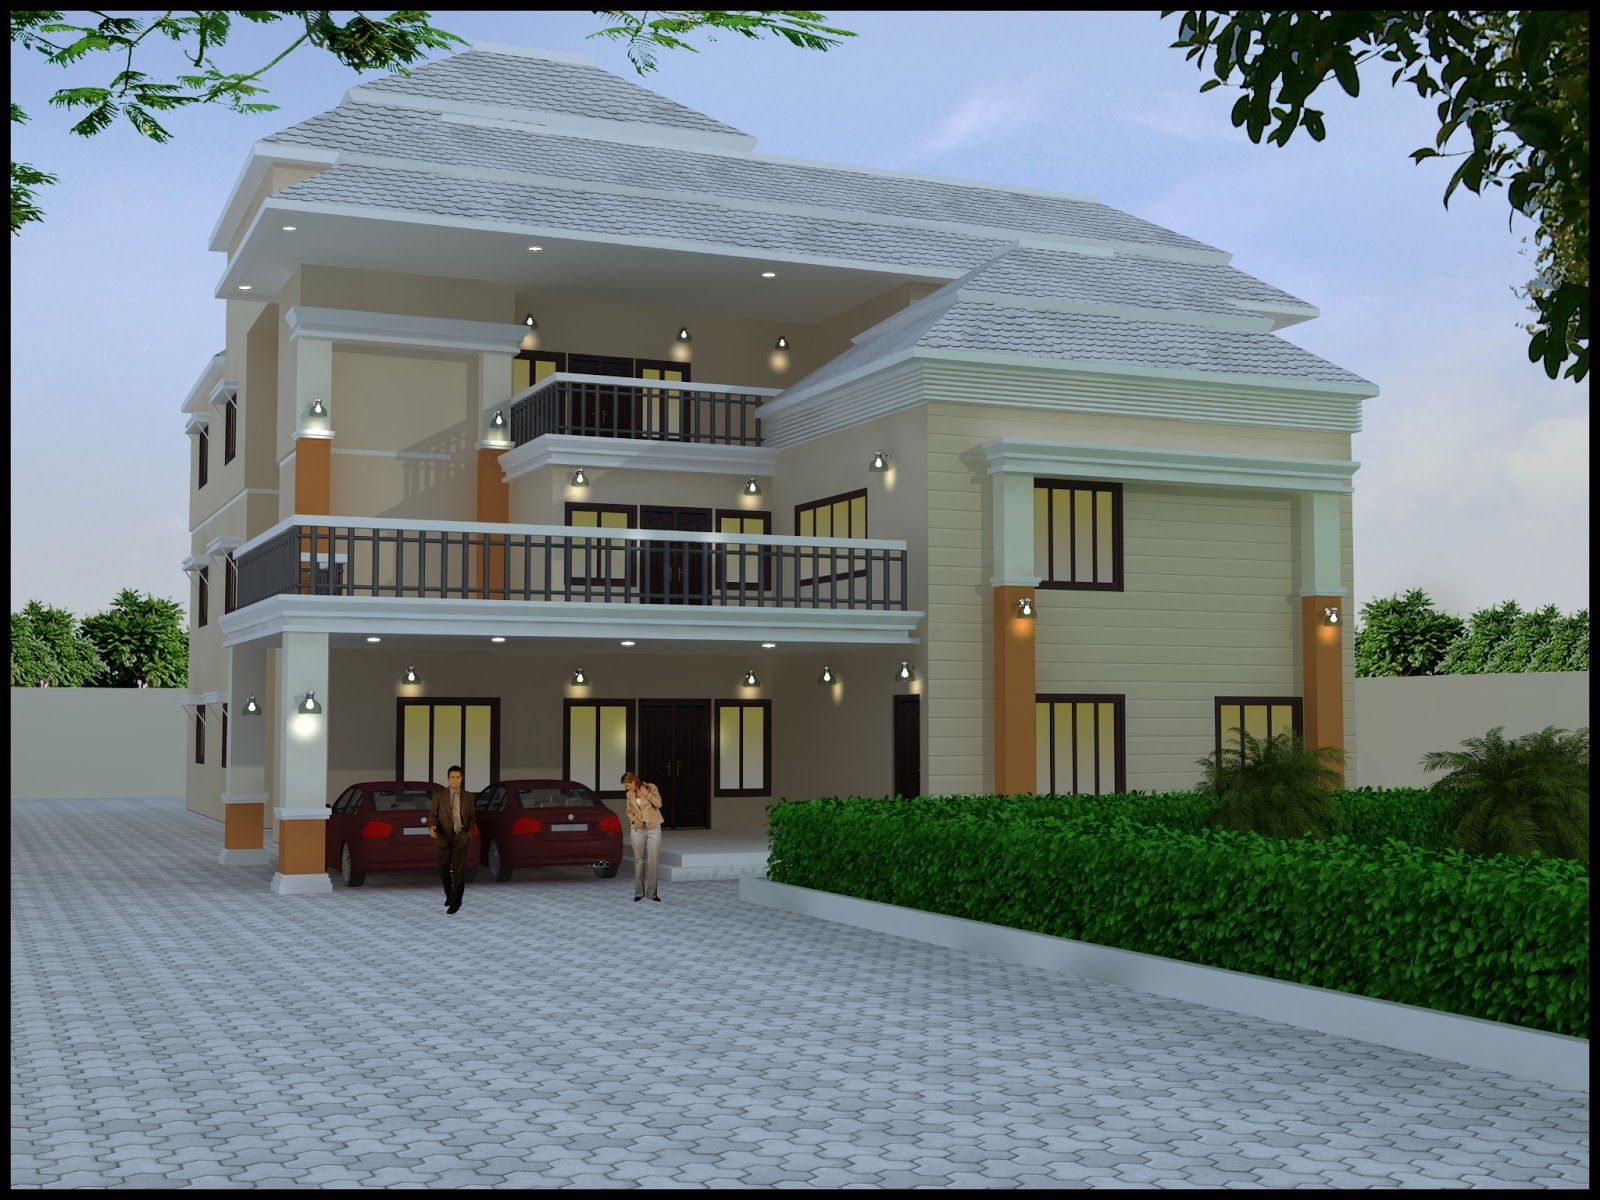 Modern jamaican house designs google search